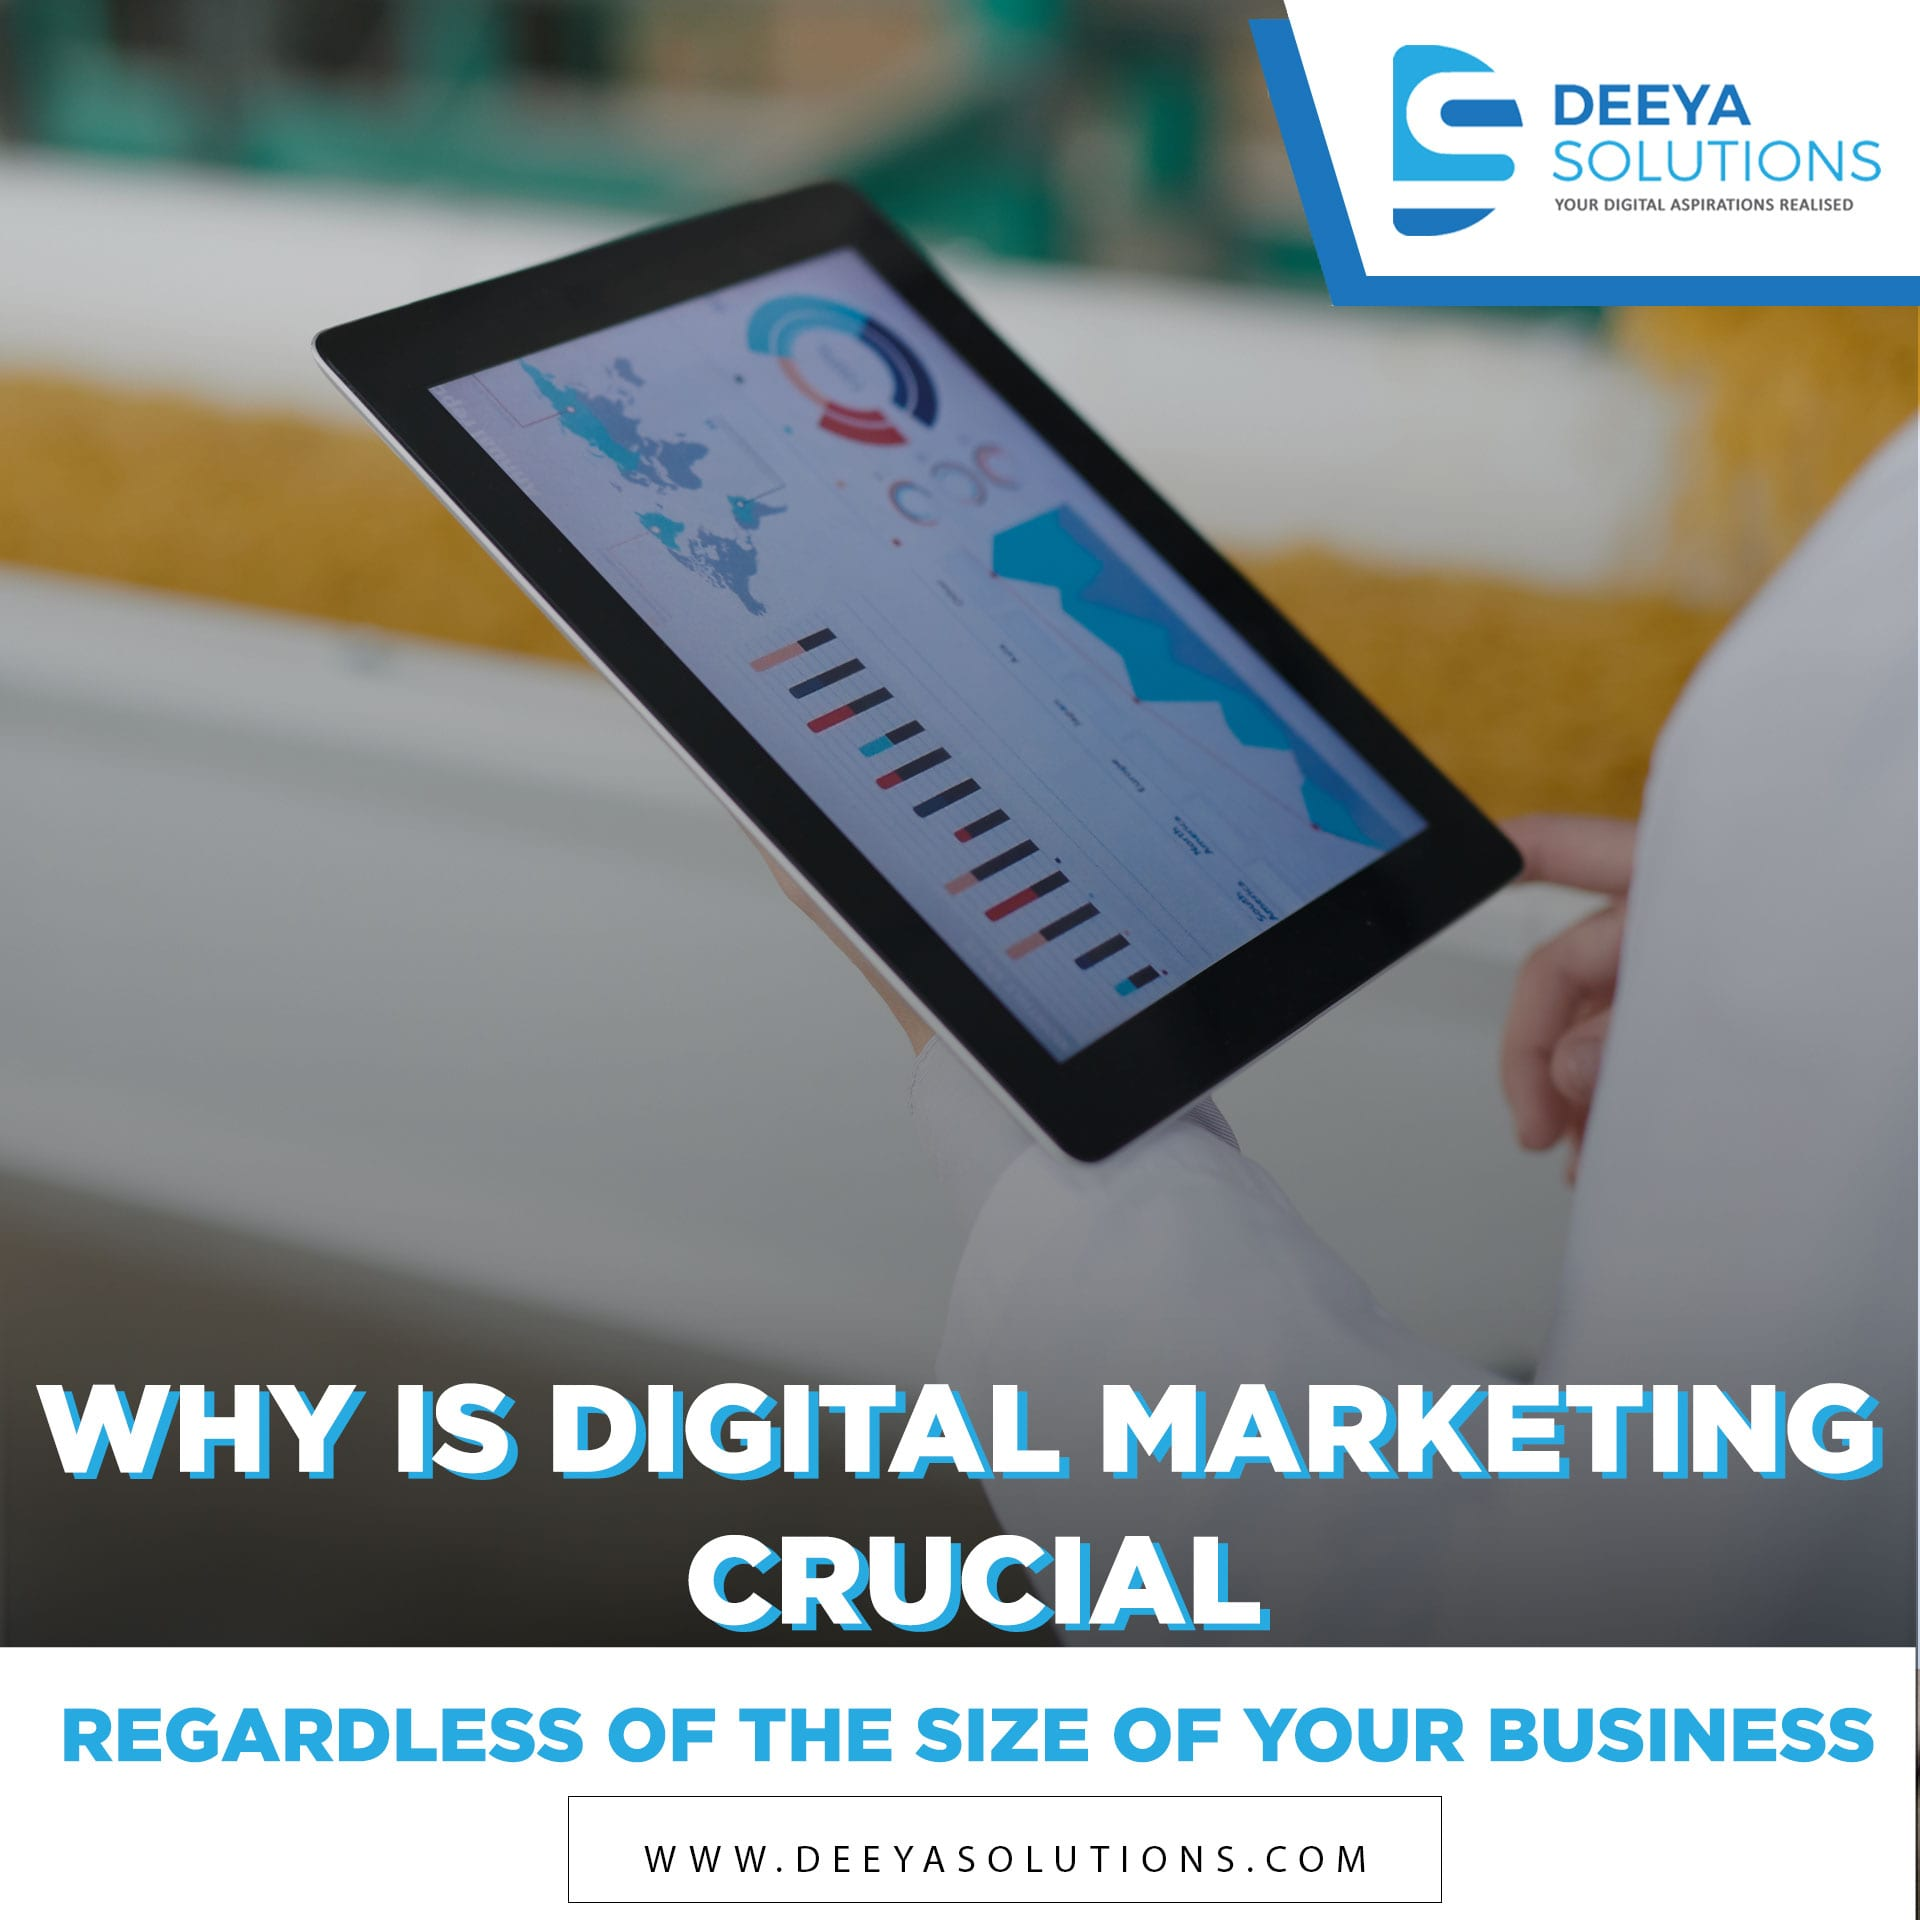 Why is Digital Marketing Crucial, Regardless of the Size of Your Business?